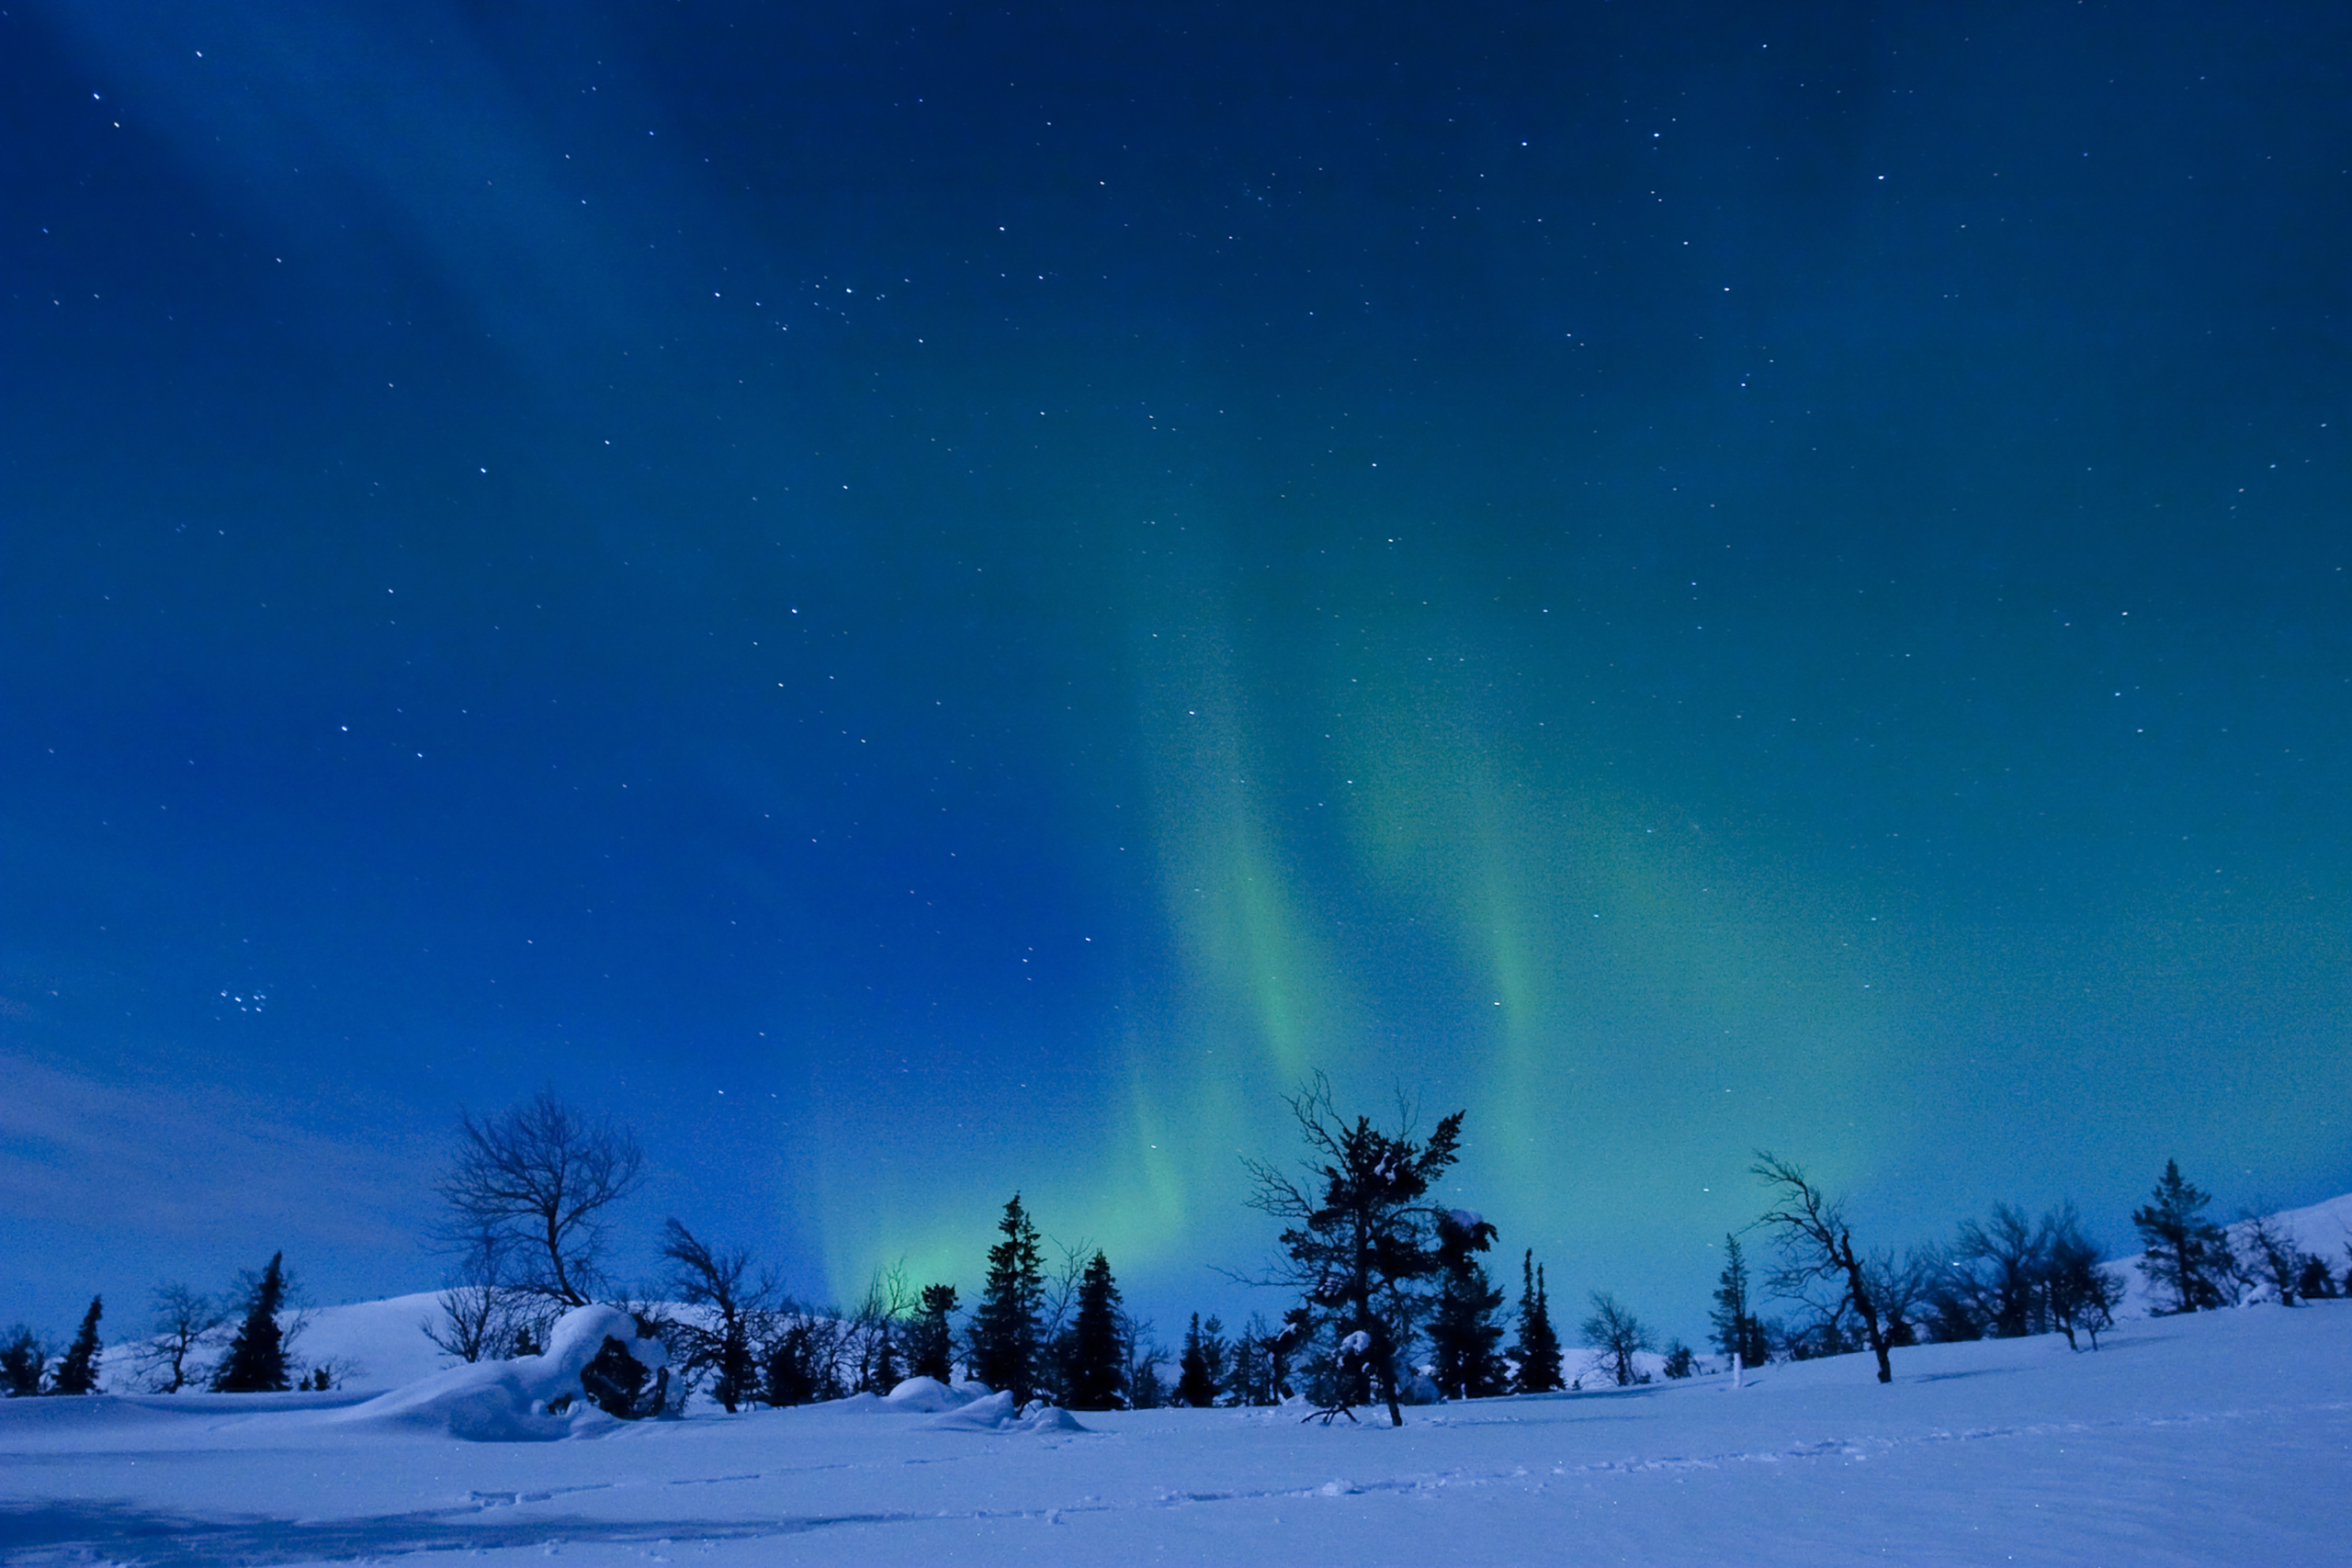 Pallas-Yllästunturi National Park, Finland. Located in the Lapland region of Finland, most of this park consists of primeval forests. It contains the Hetta-Pallas, Finalnd's oldest hiking trail. On dark nights, the northern lights can be seen.